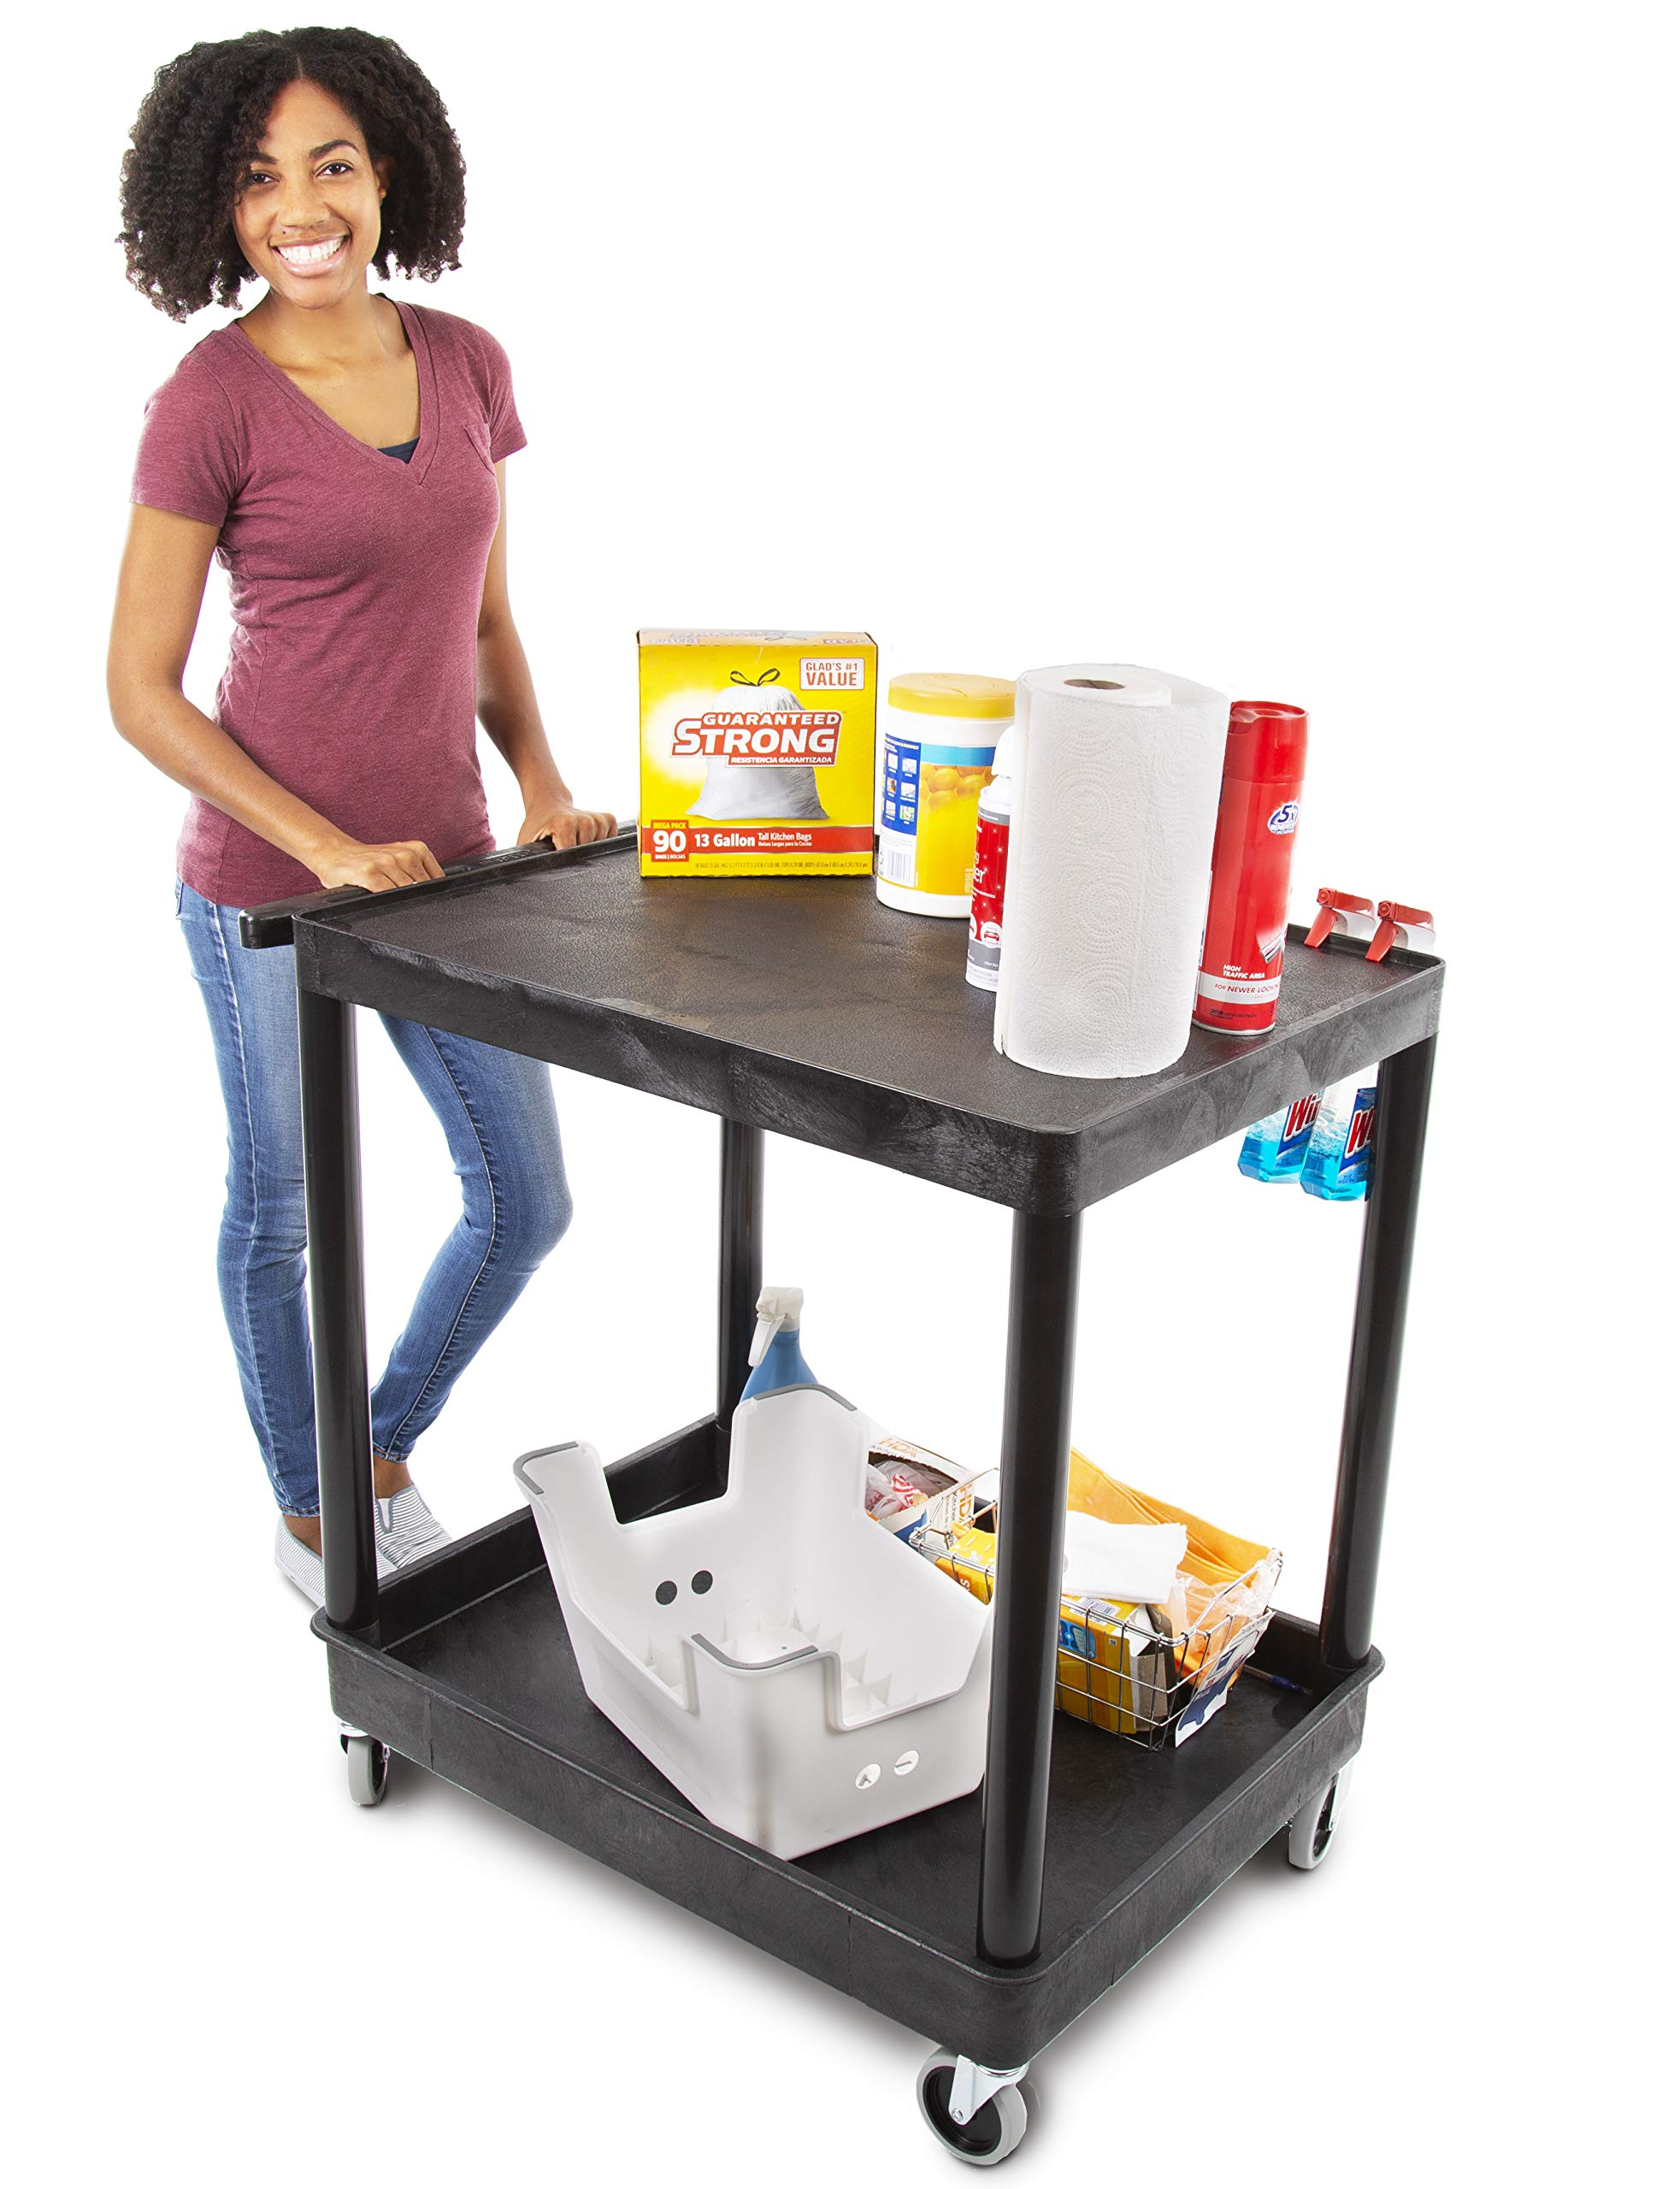 Original Tubstr – Flat Top Utility Cart/Service Cart – Large, 32 x 24 Inches – Heavy Duty, Supports up to 400 lbs!   Lipped Top Shelf & Deep Tub Bottom Shelf– Great for Warehouse, Cleaning & More!